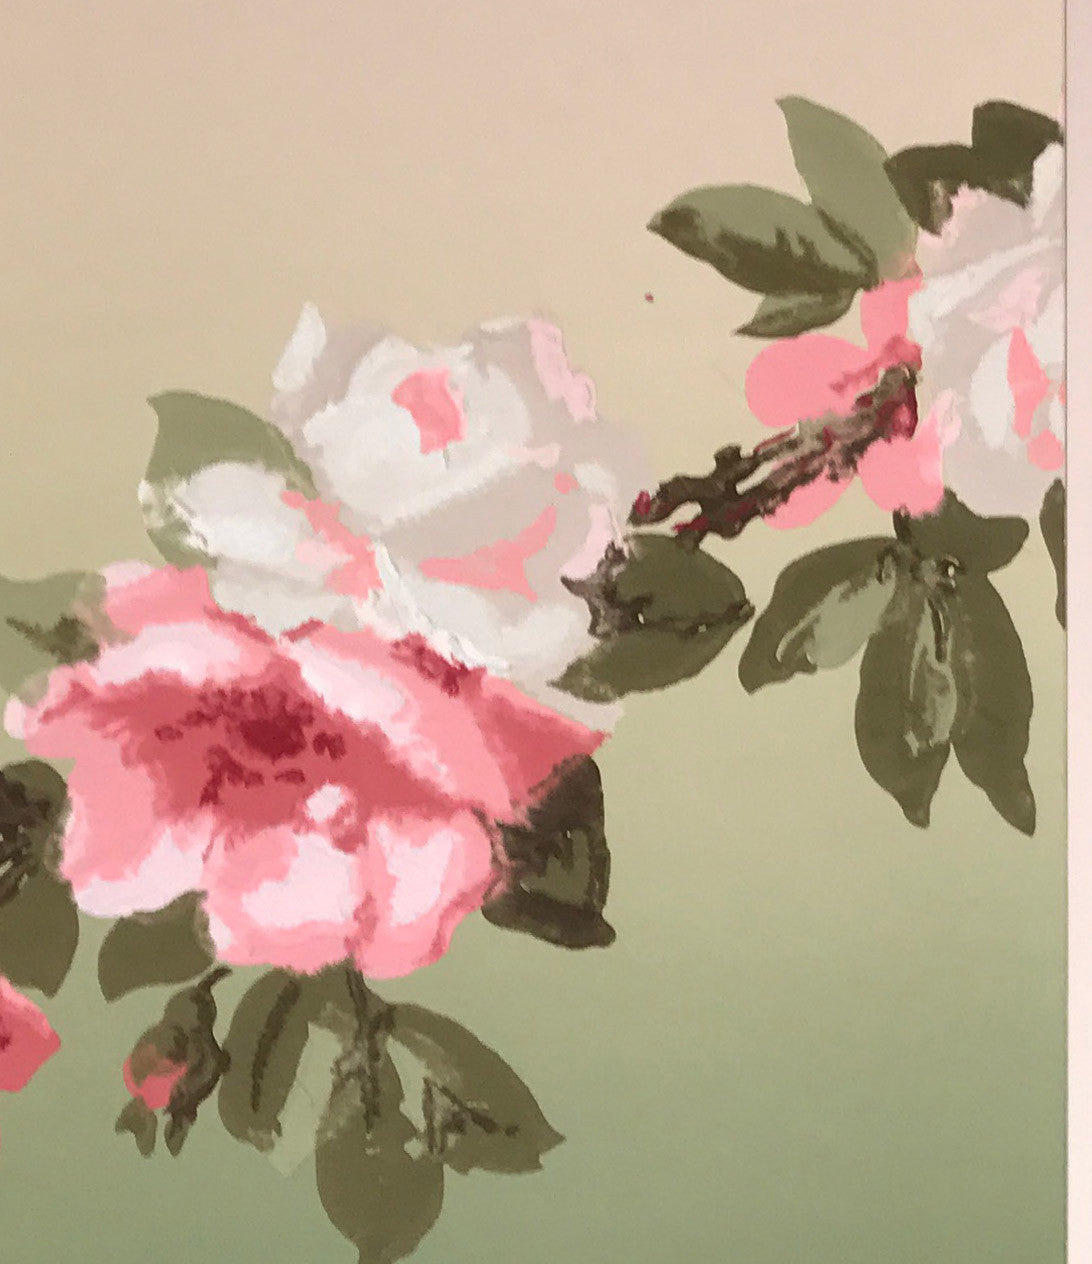 Blended Rose Garland Frieze Fragment-Custom Mounted Antique Wallpaper Art - Sold